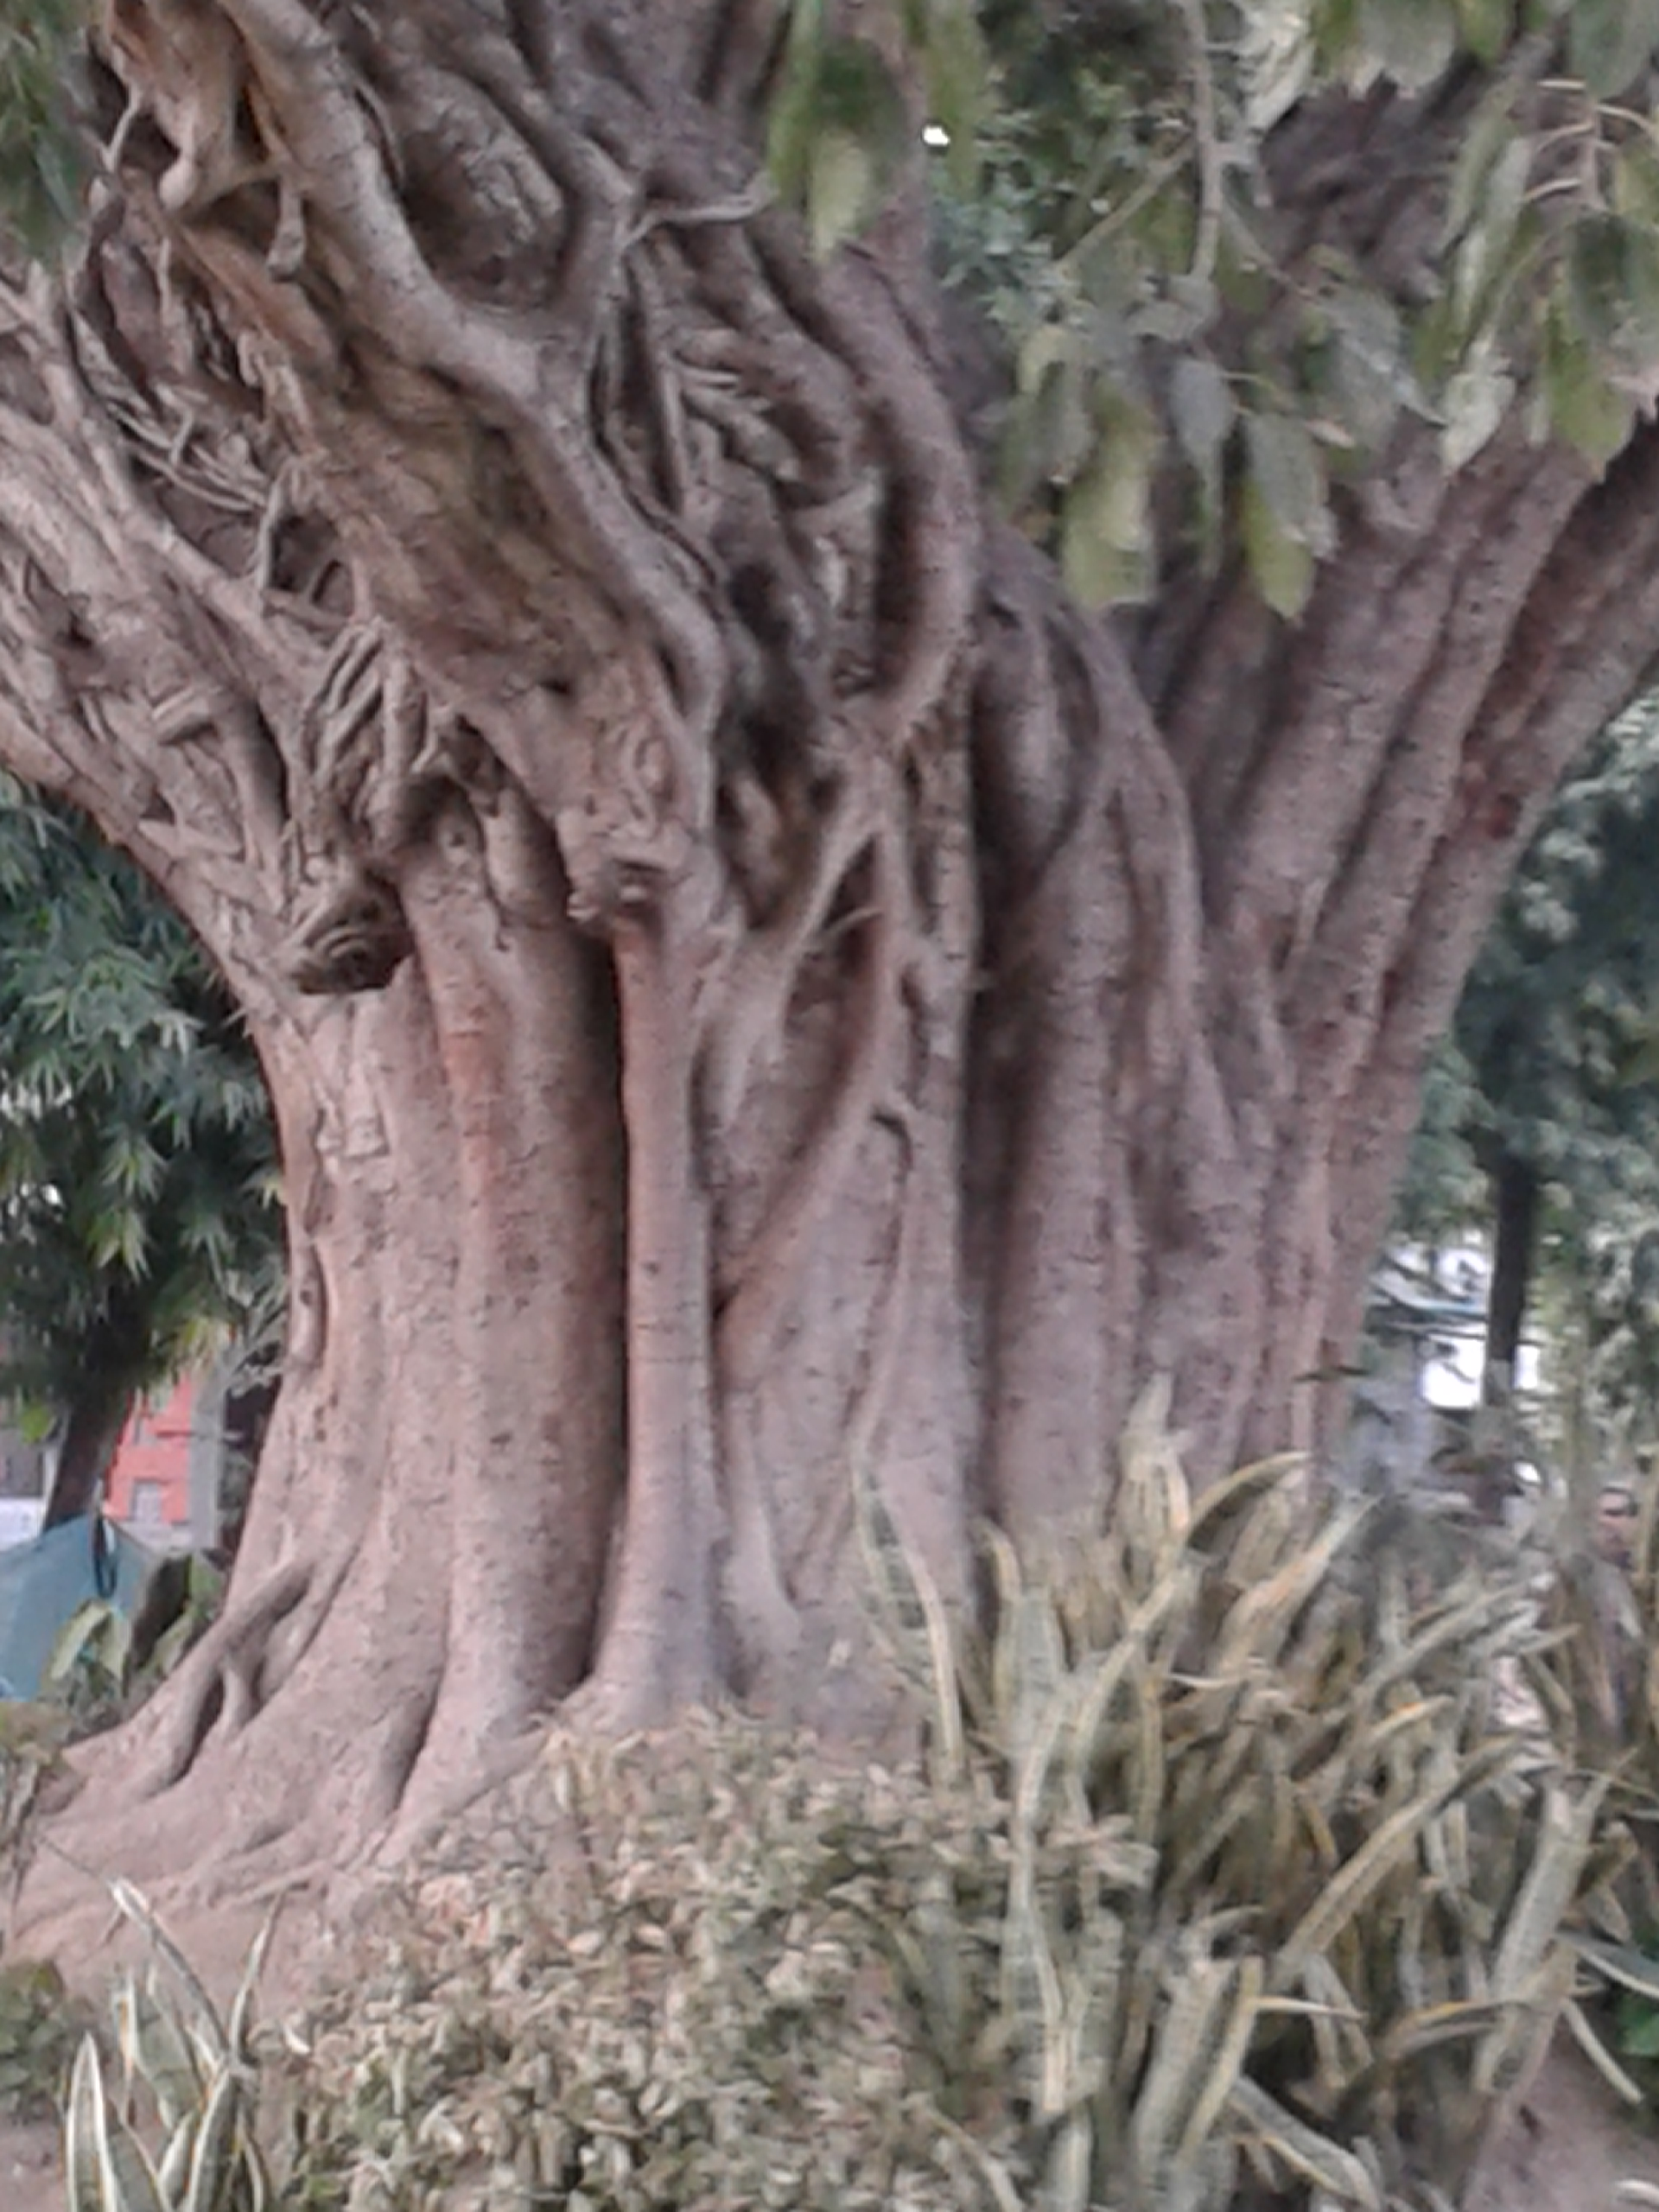 300 year old banyan tree